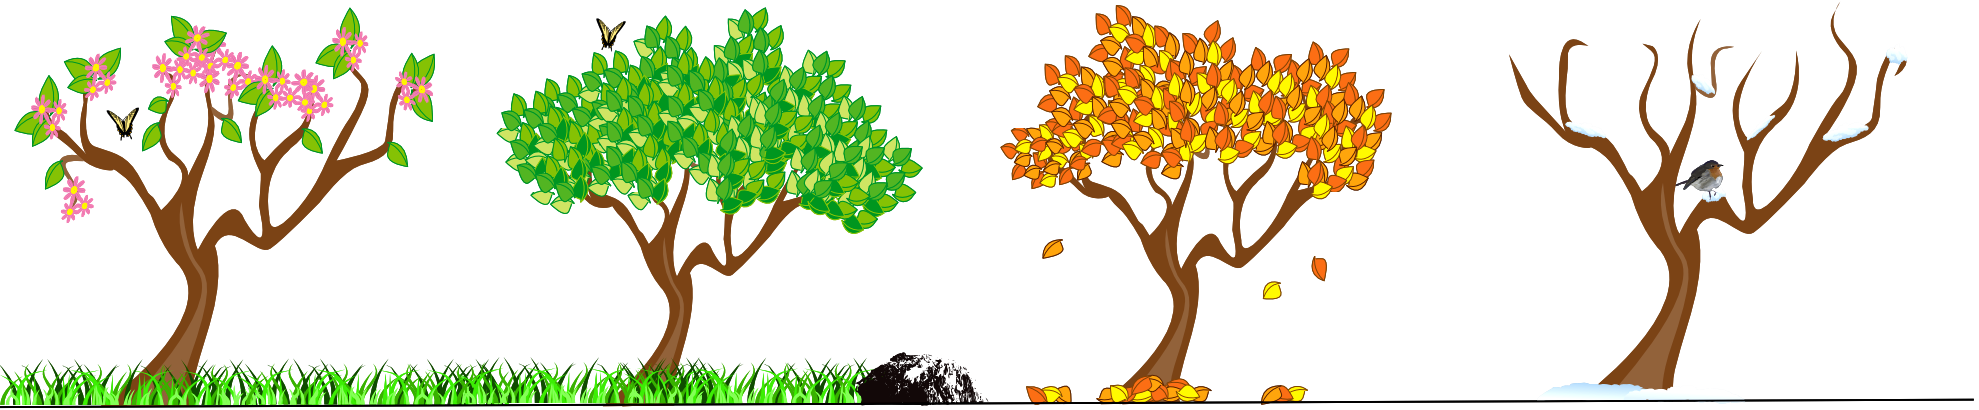 freeuse download 4 seasons tree clipart #55039895